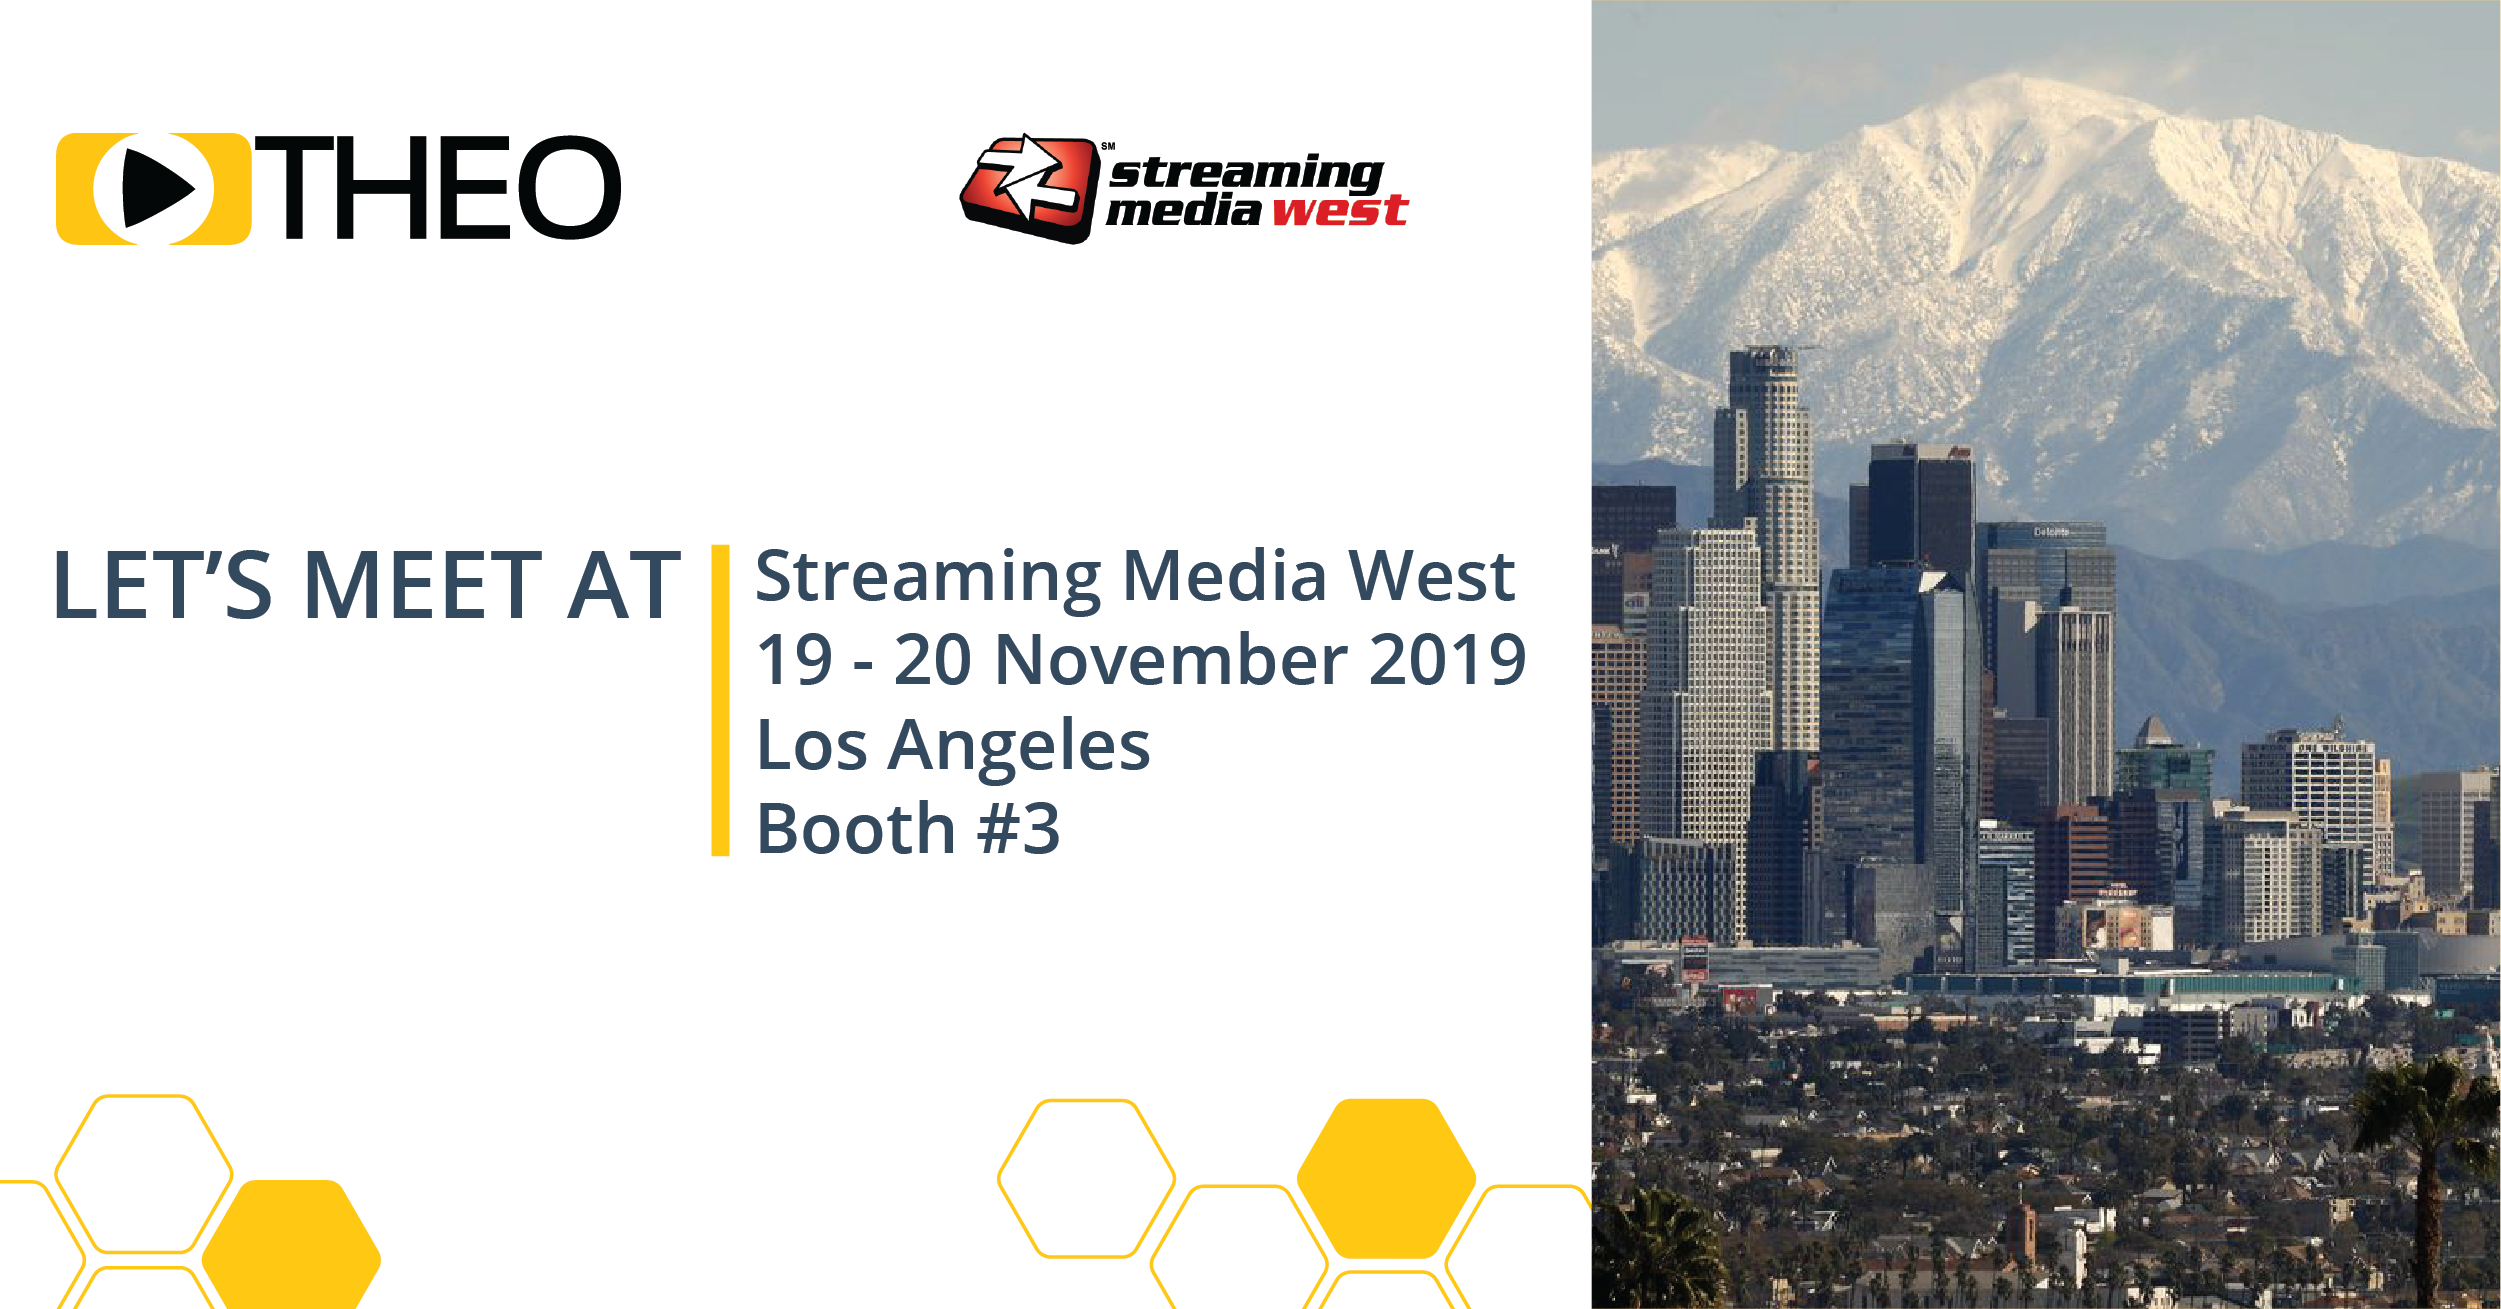 Meet THEO at Streaming Media West 2019